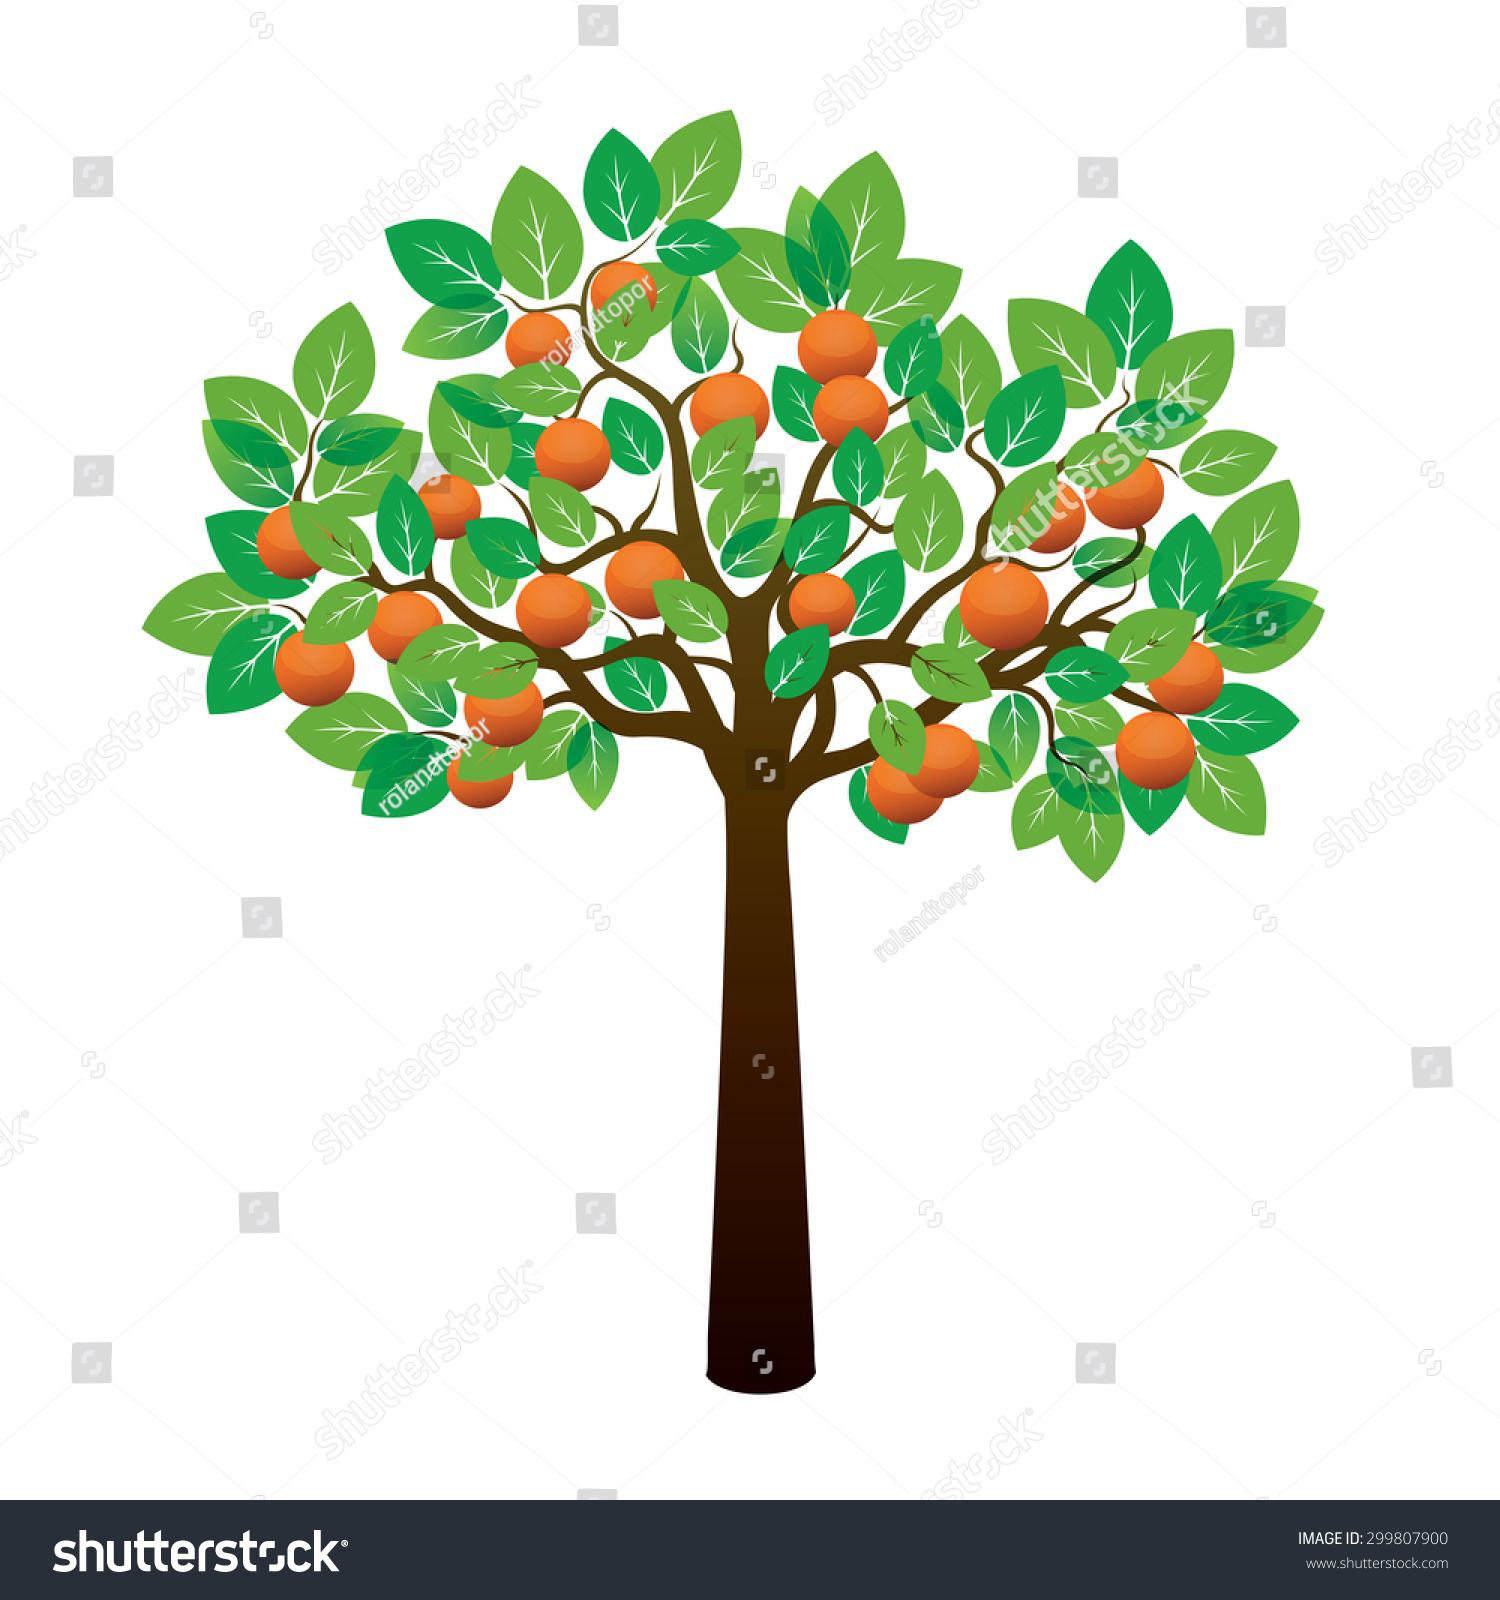 Orange Tree Fruits Vector Illustration Stock Vector ...